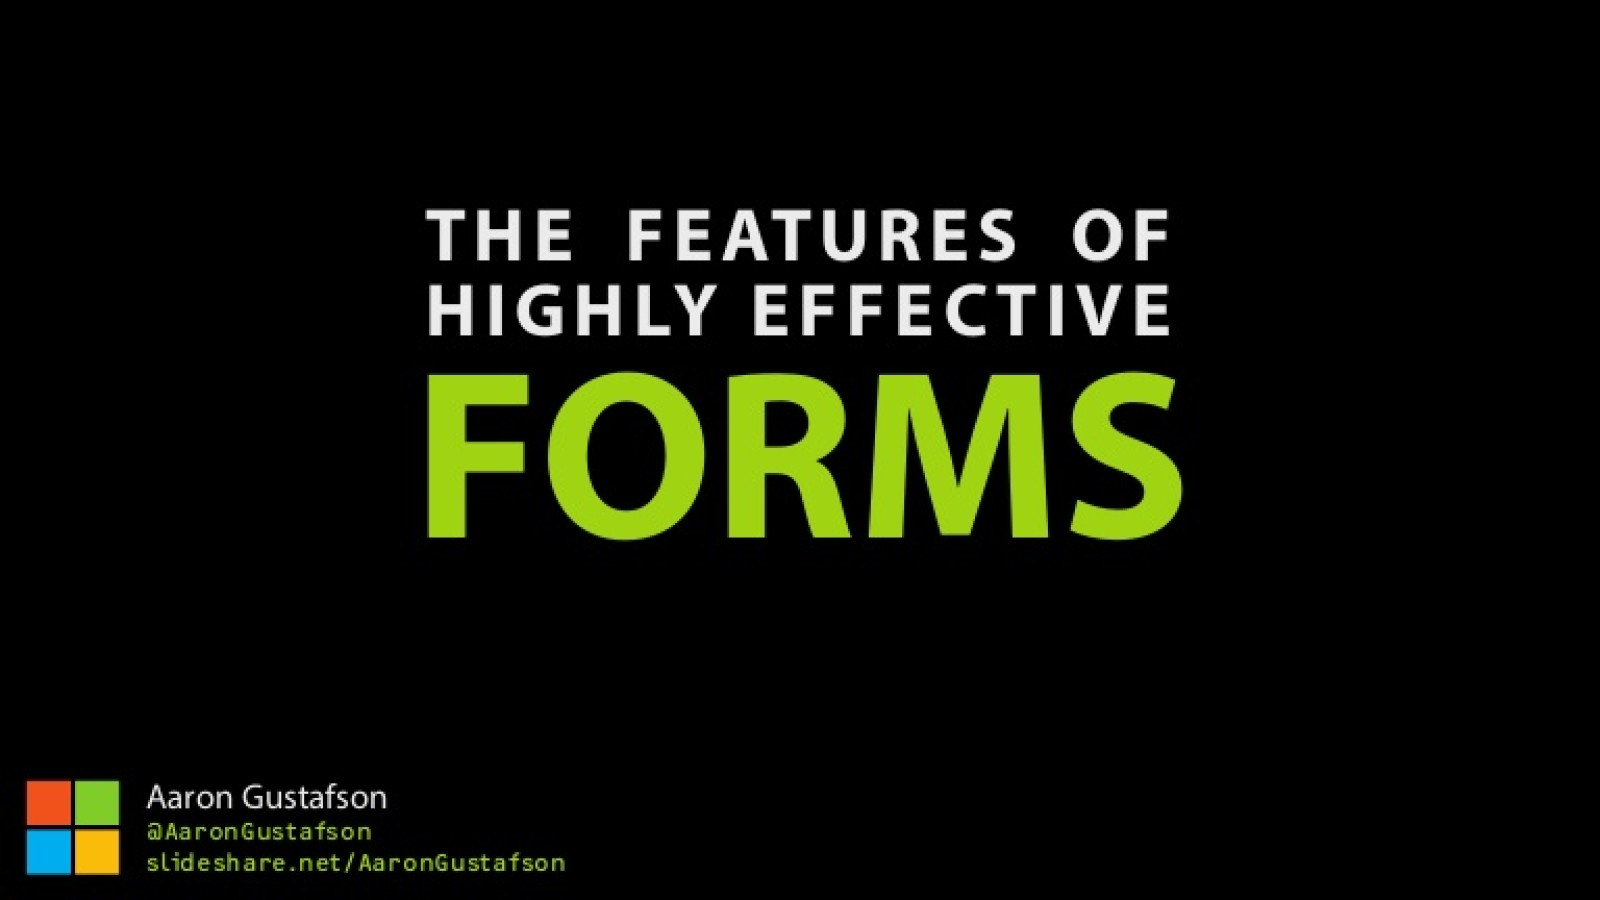 The Features of Highly Effective Forms